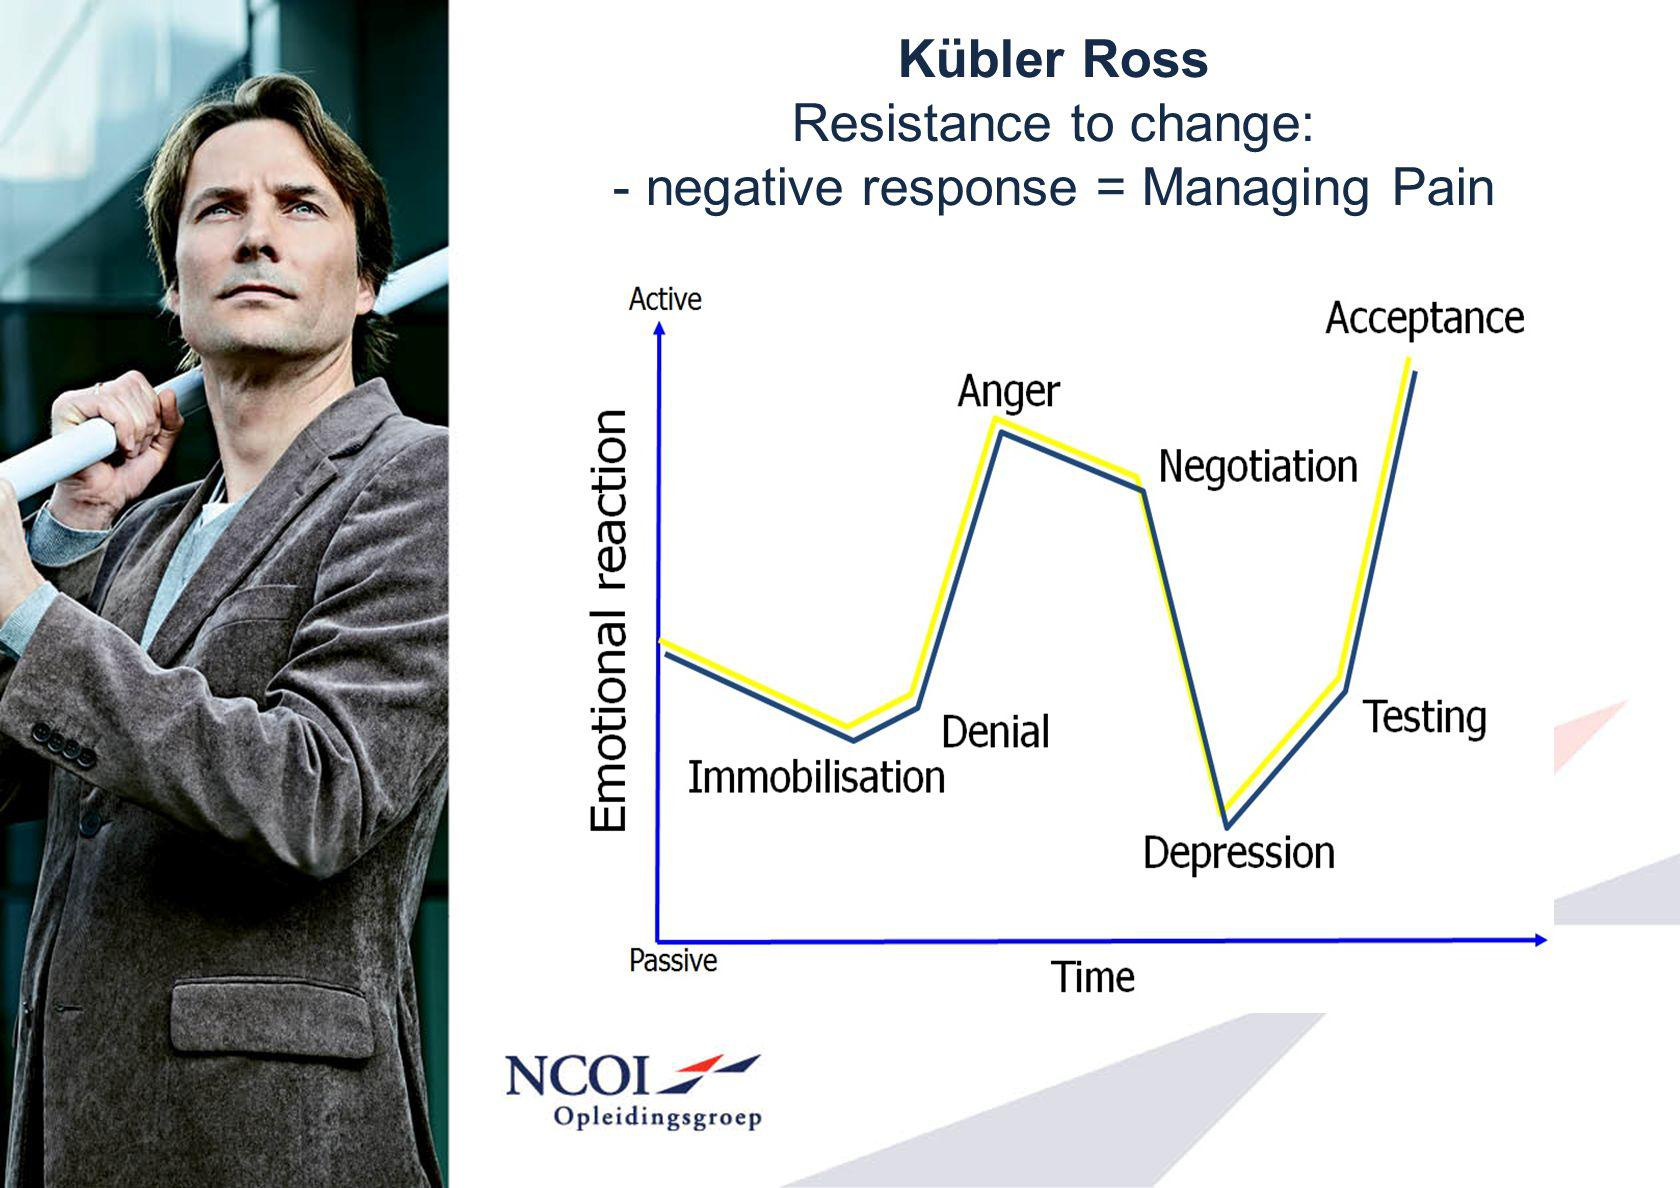 Kübler Ross Resistance to change: - negative response = Managing Pain